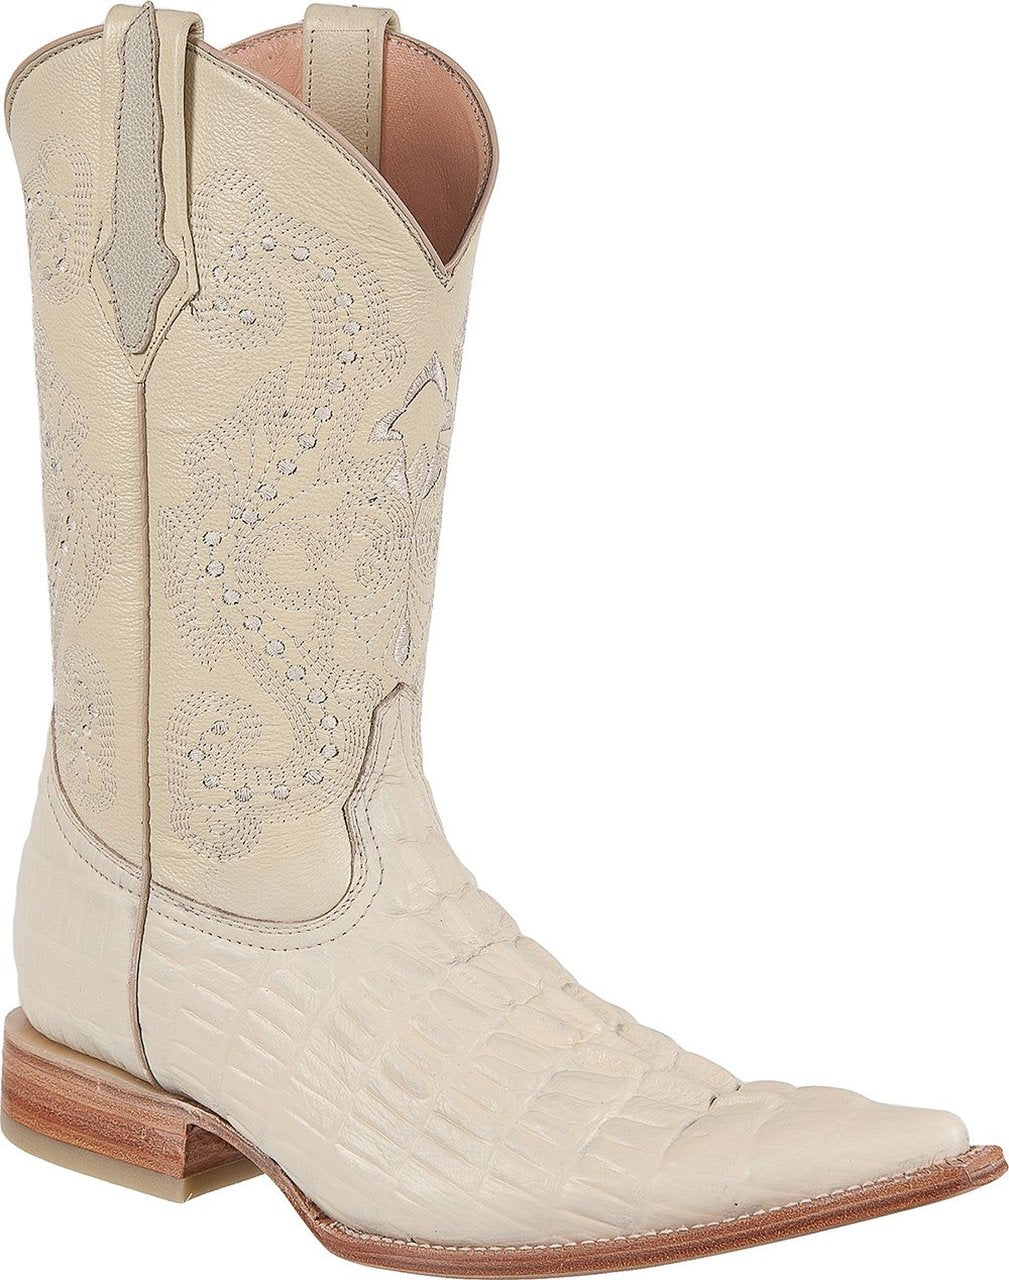 TIERRA BLANCA Men's Bone Crocodile Print Boots - Ch Toe